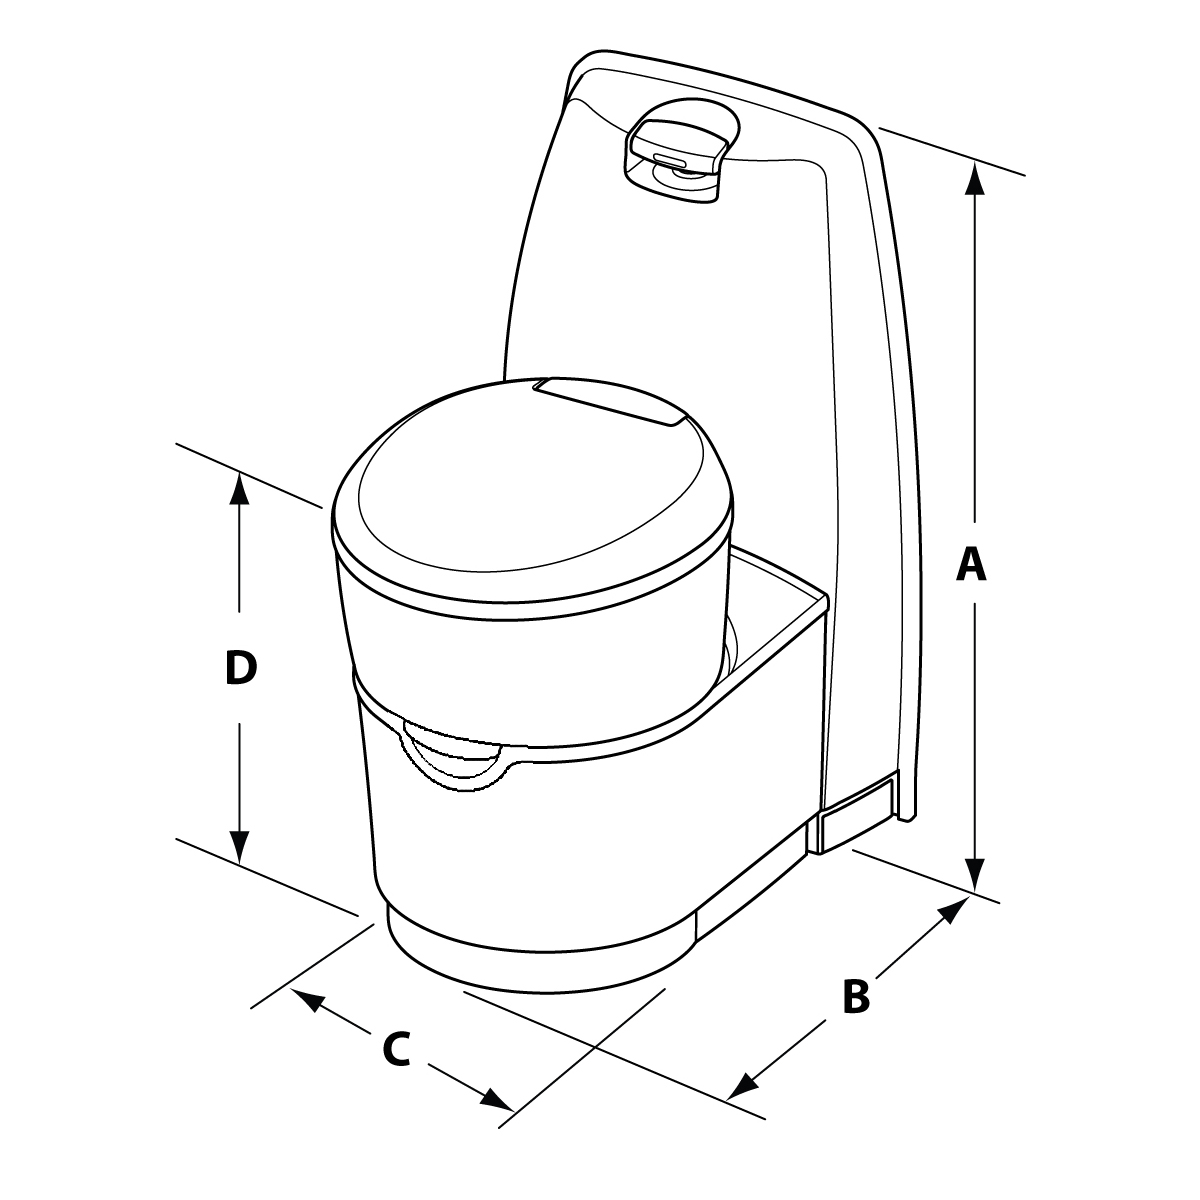 Luxury Anatomy Of A Toilet Collection - Anatomy and Physiology ...